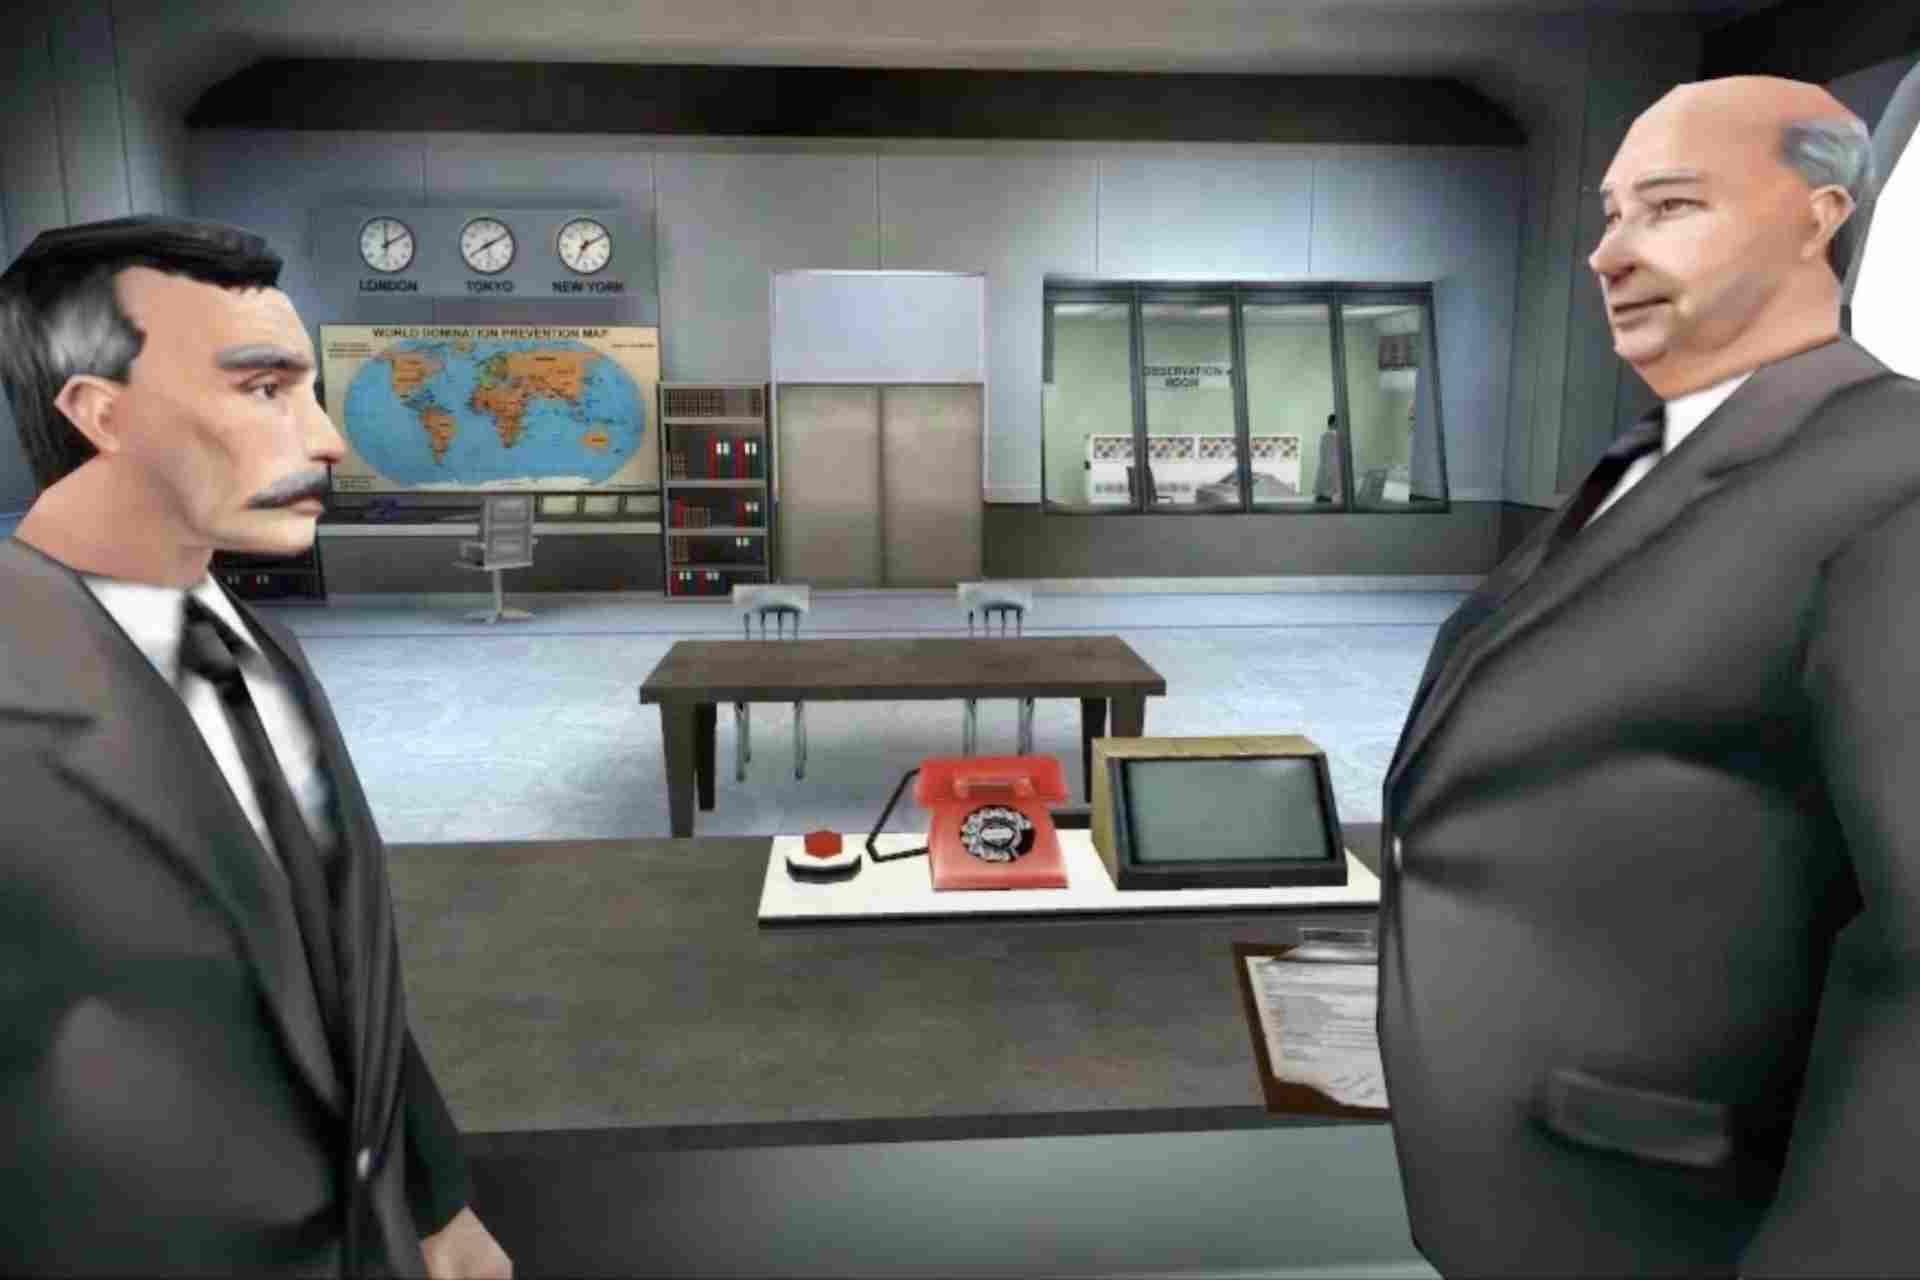 Mr.Smith and Mr.Jones are the heads of the organization called UNITY in No one lives forever game.